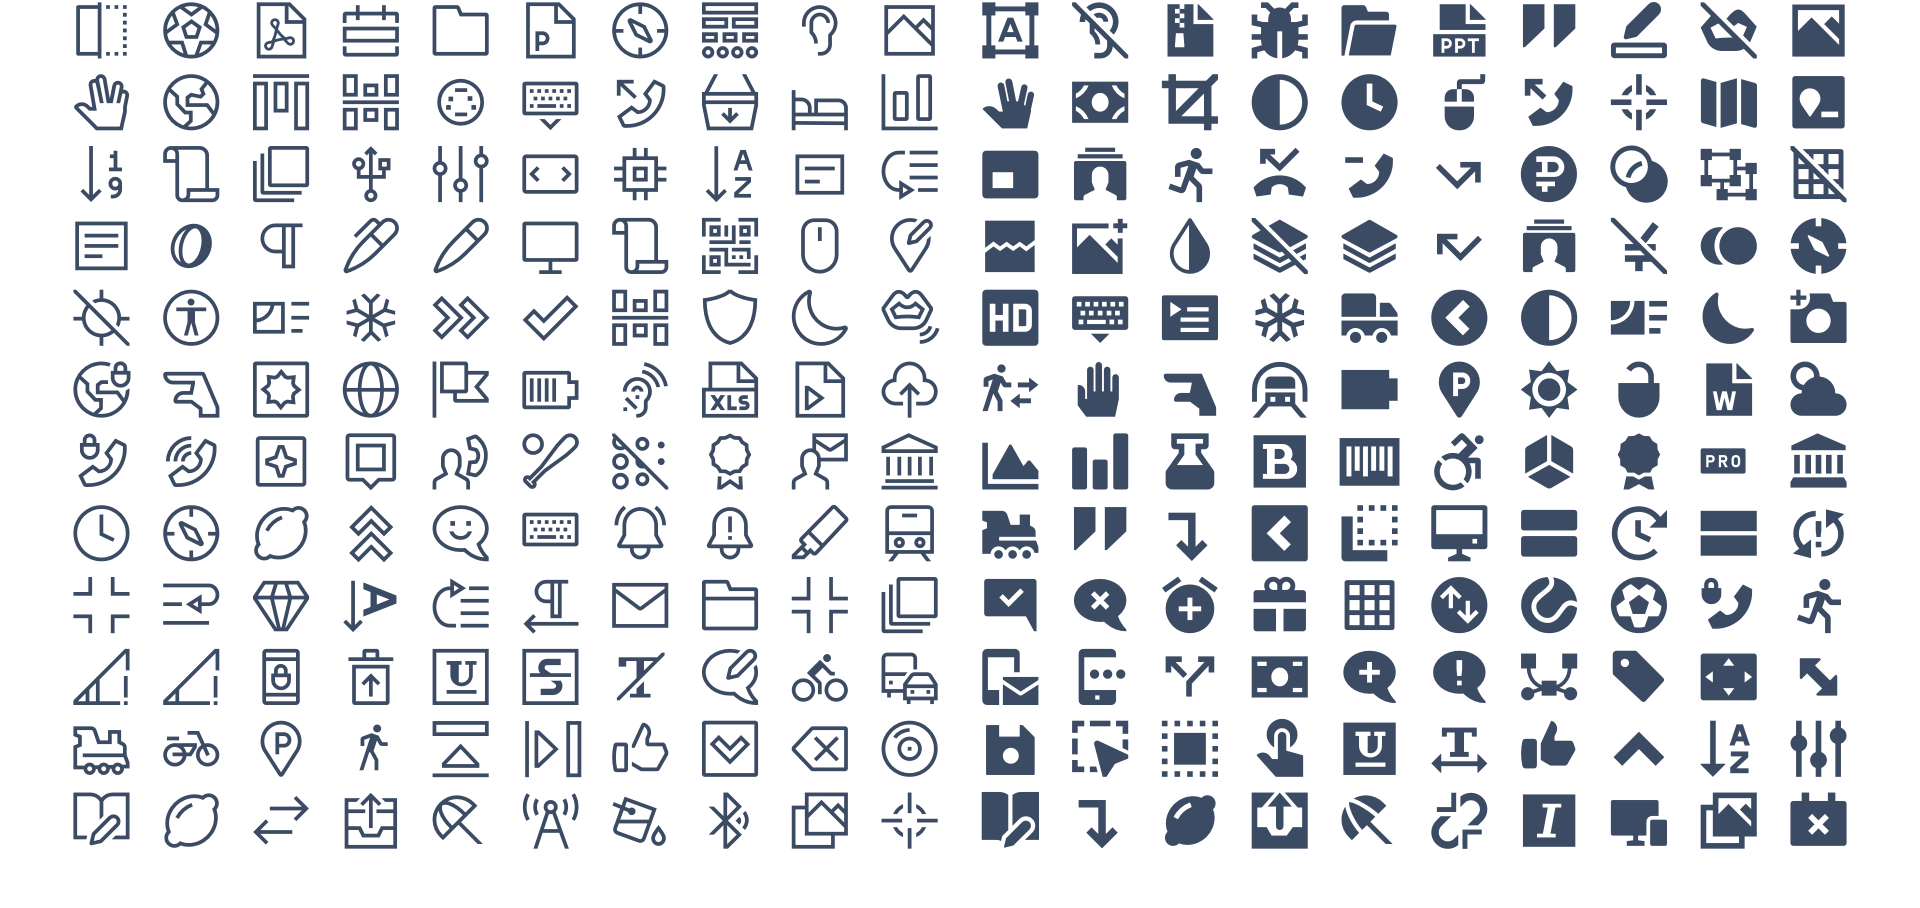 Free Icons Svg Png Javascript Icon Font Over 1500